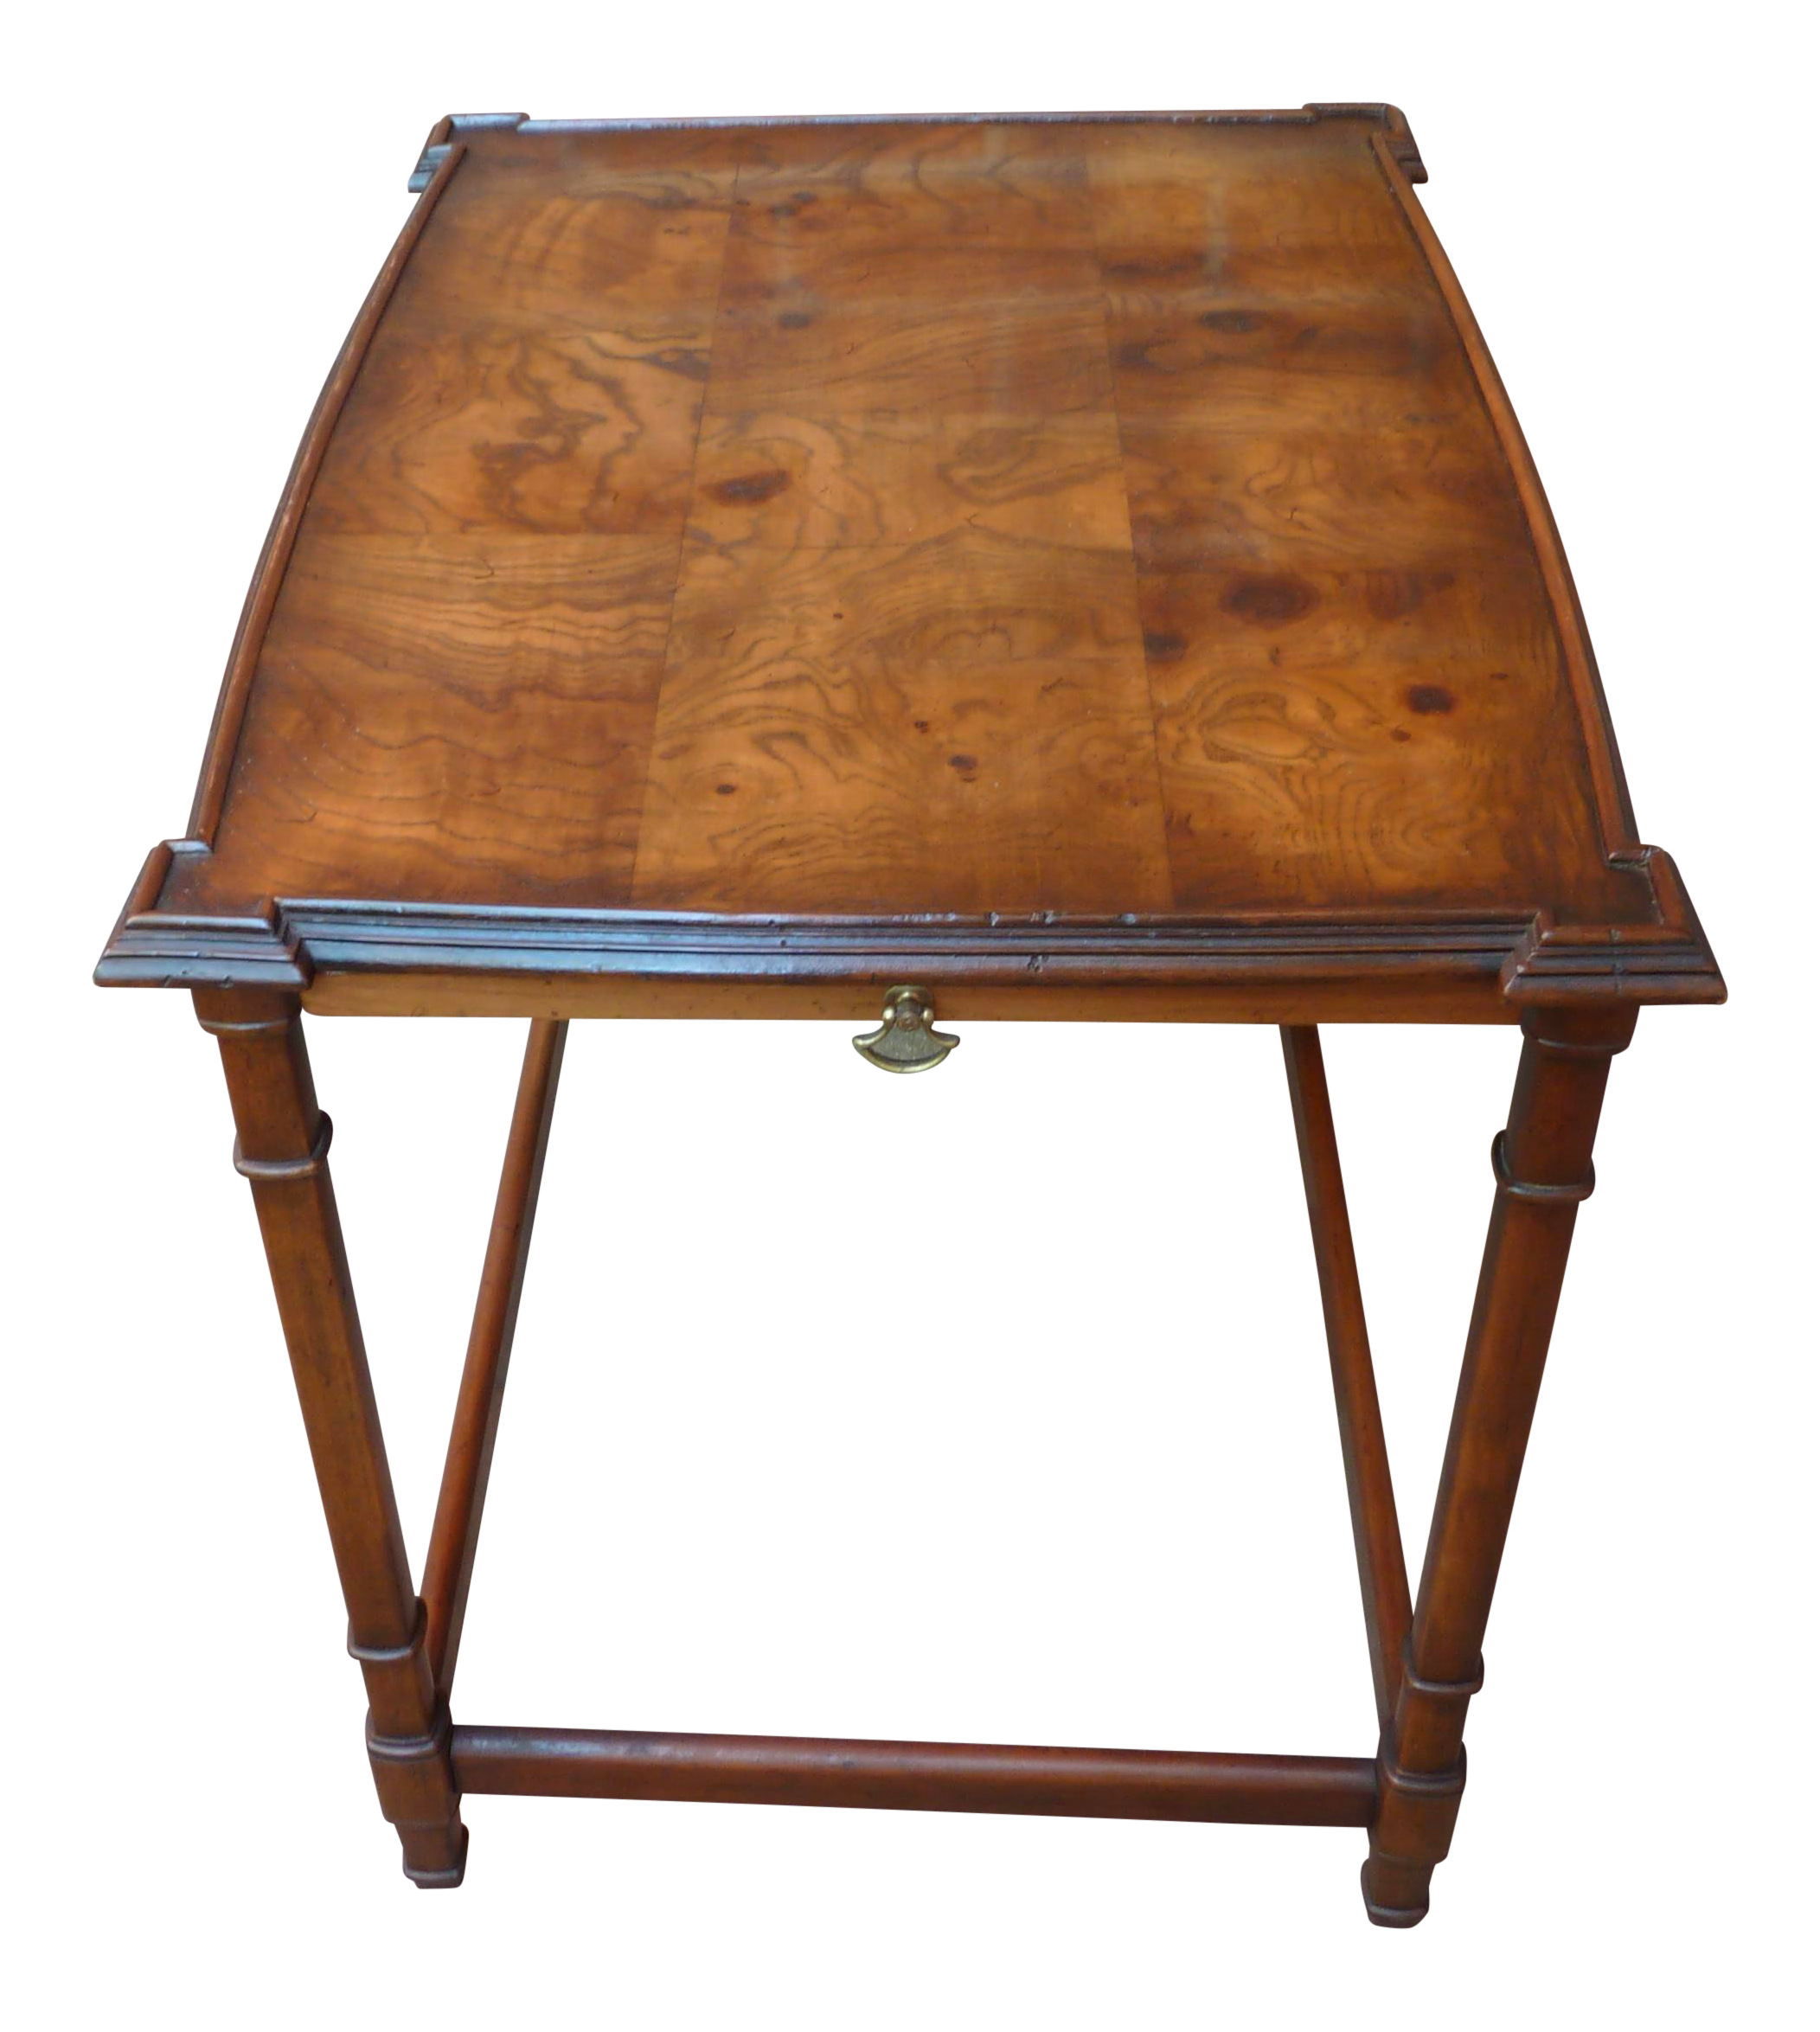 century traditional burl wood accent table chairish side light door stopper small mid coffee square glass oversized armchair large drop leaf dining parker furniture cast iron